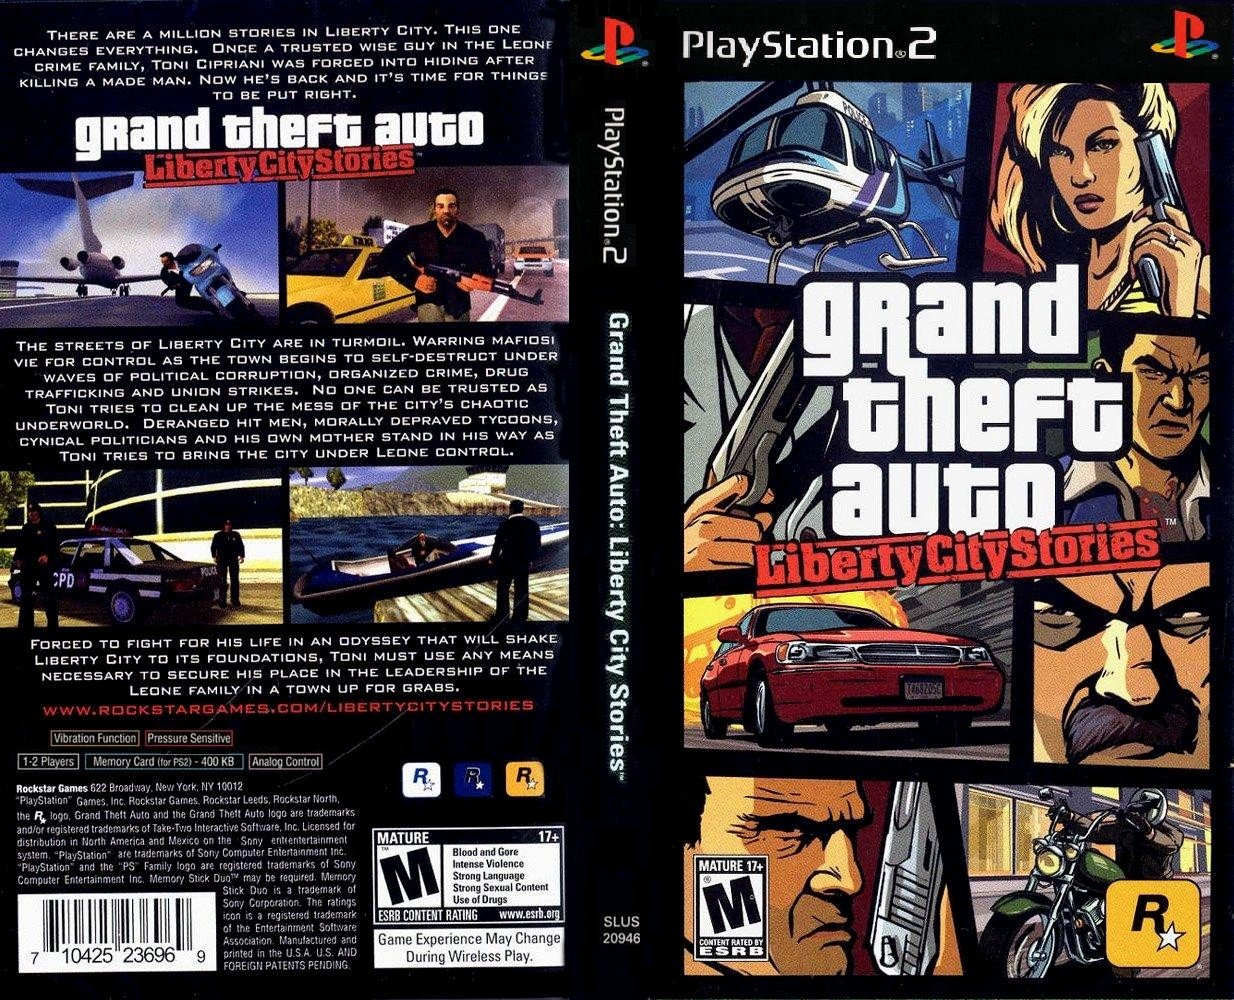 Grand_Theft_Auto_Liberty_City_Stories_Dv